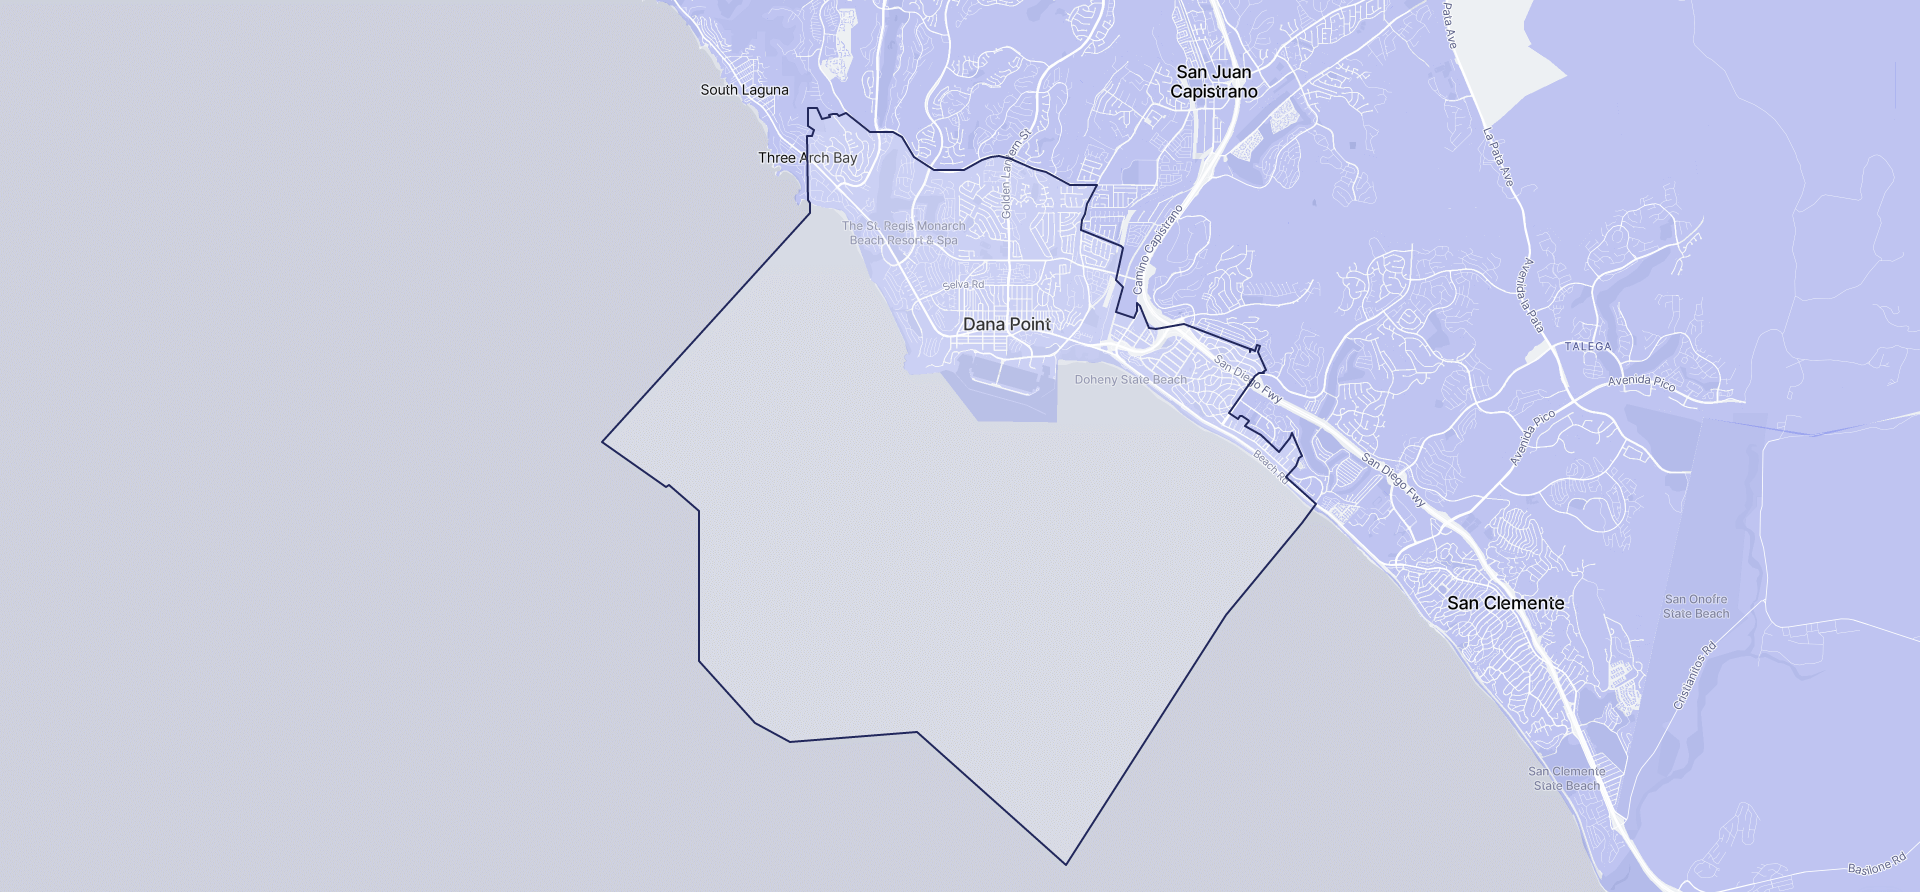 Image of Dana Point boundaries on a map.